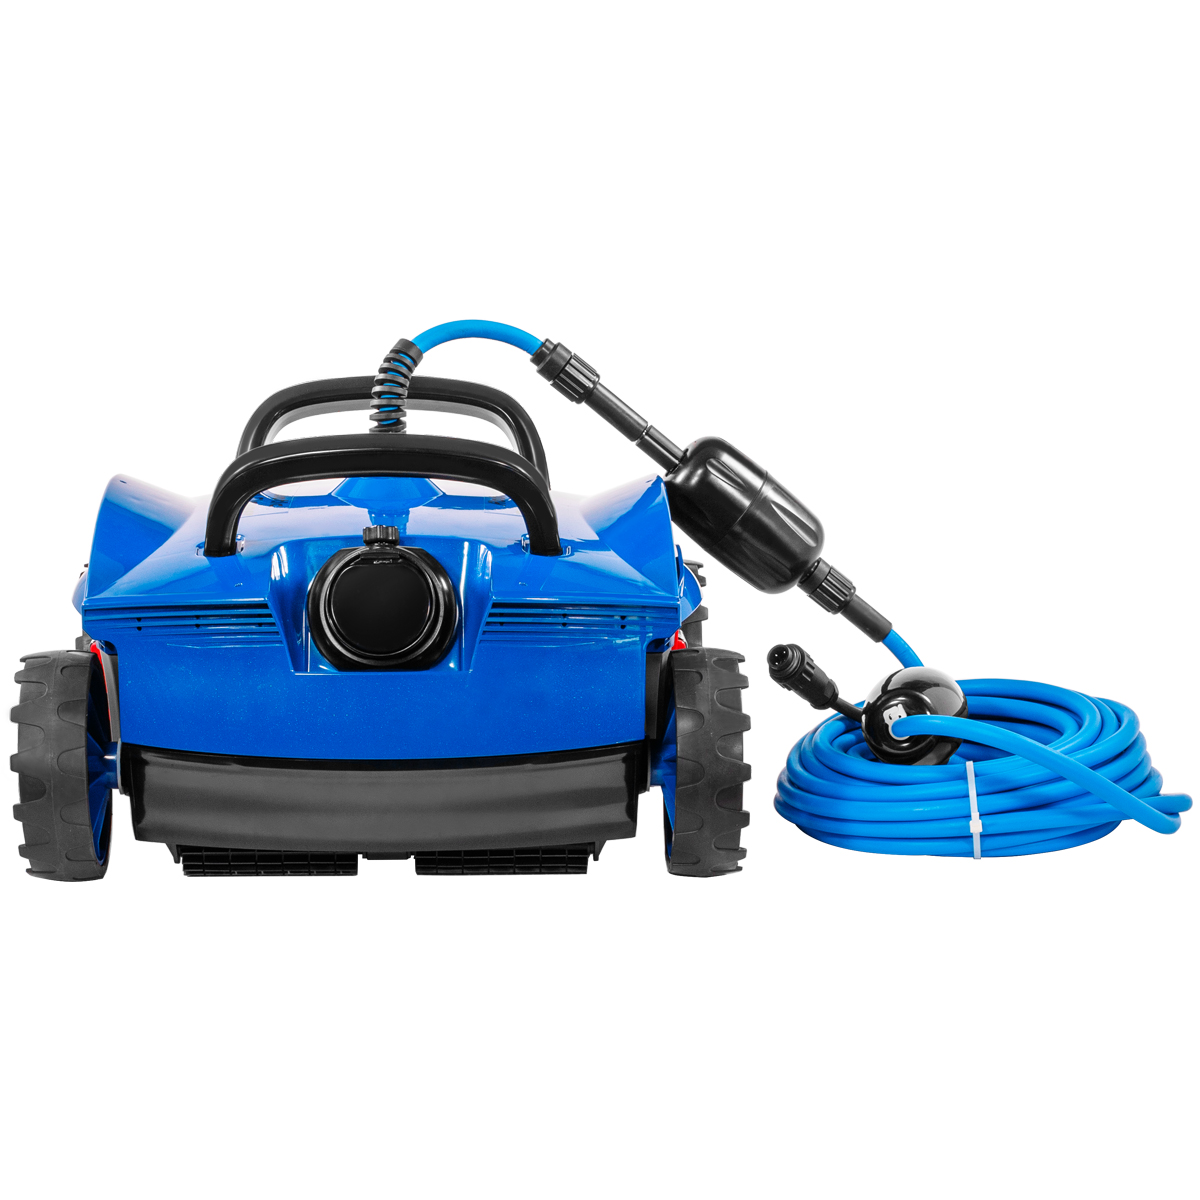 Details about Premium Robotic Rover Above / In-Ground Swimming Pool Vacuum  Cleaner Pool